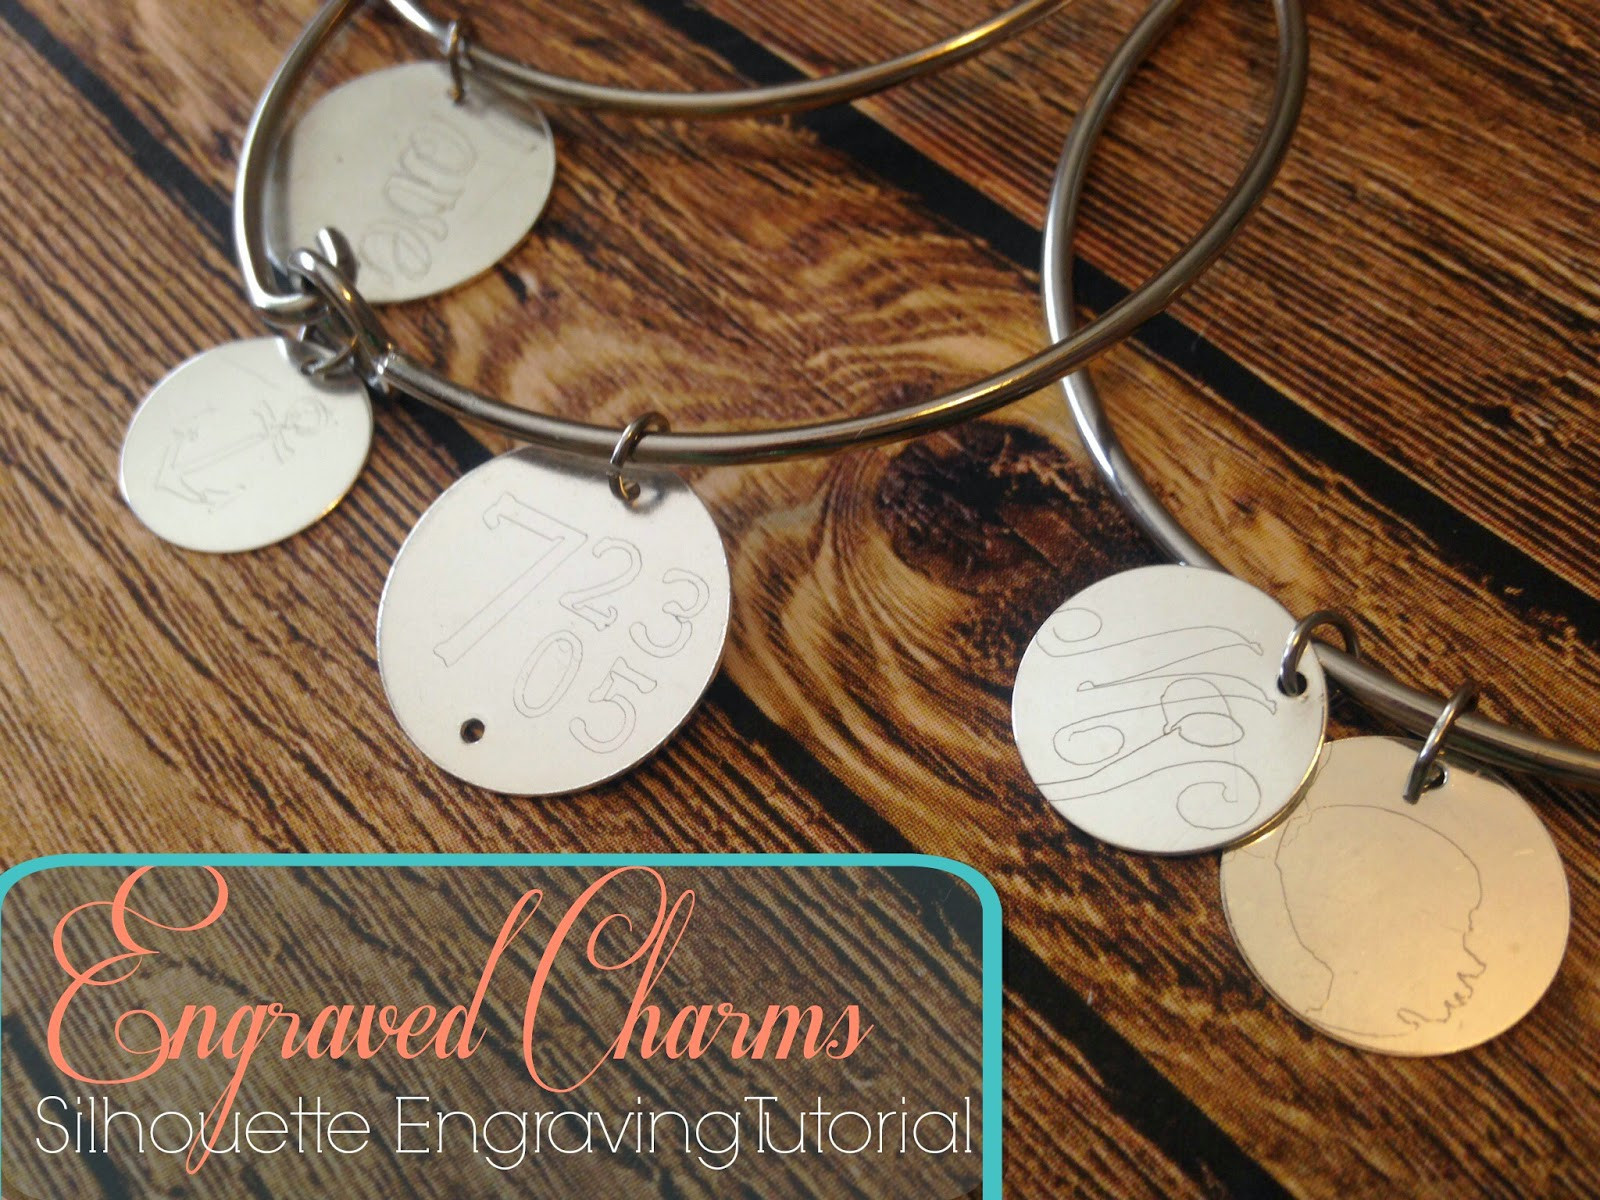 Engraving With Silhouette 7 Tips To The Perfect Engraving